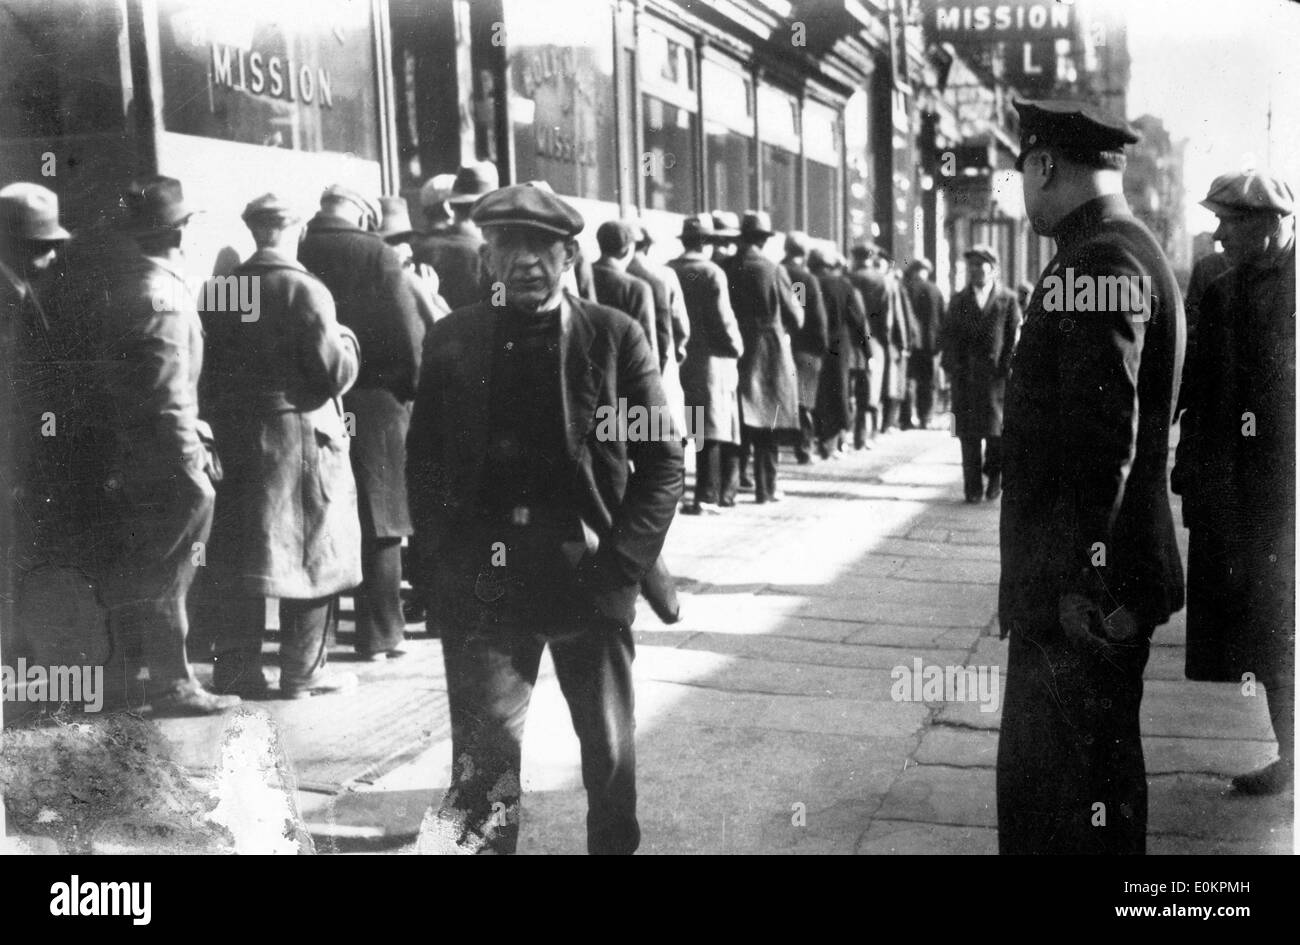 great depression stock photos great depression stock images  people awaiting food during the great depression stock image